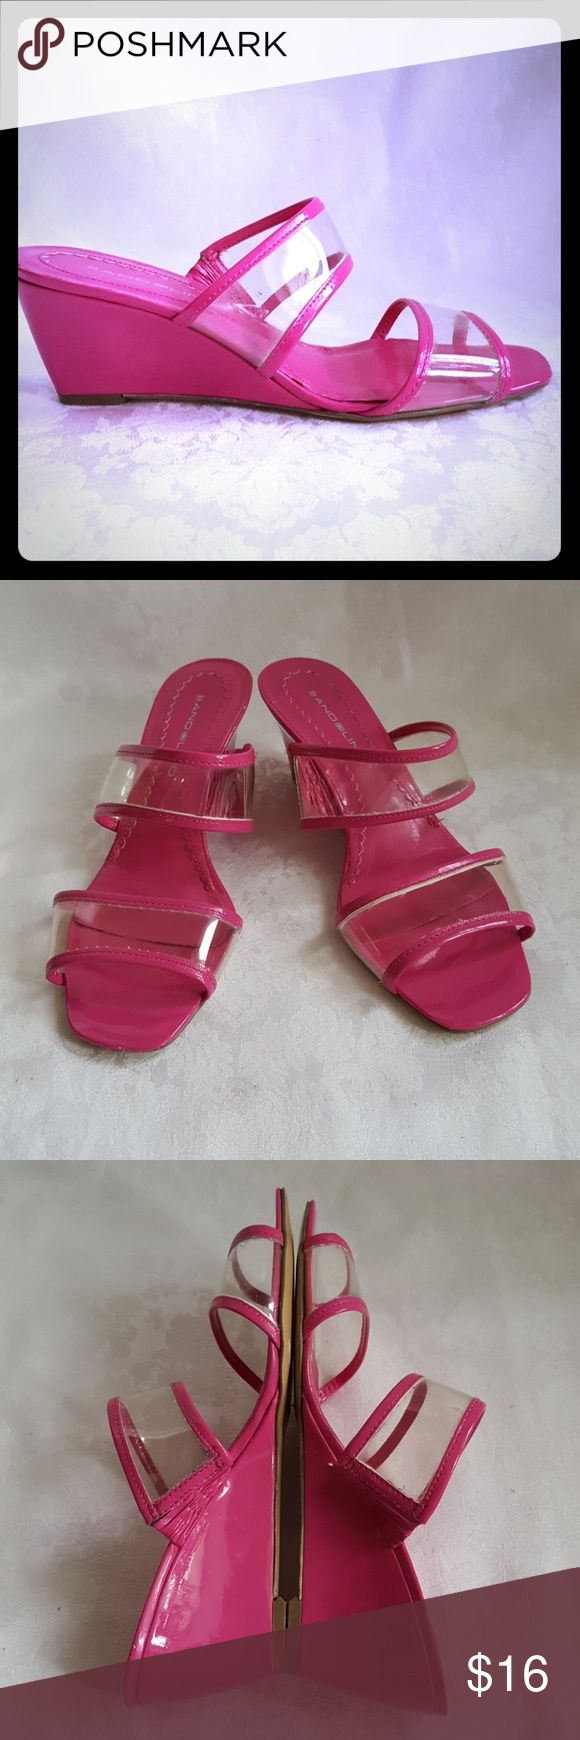 """Bandolino Hot Pink and Clear Plastic Wedge Sandal How fun and cute are these? 💗 Hop pink and clear plastic wedge by Bandolino. Approx. 2 1/2"""" wedge.   Excellent used condition. Smoke free and pet free home. Bandolino Shoes Wedges"""